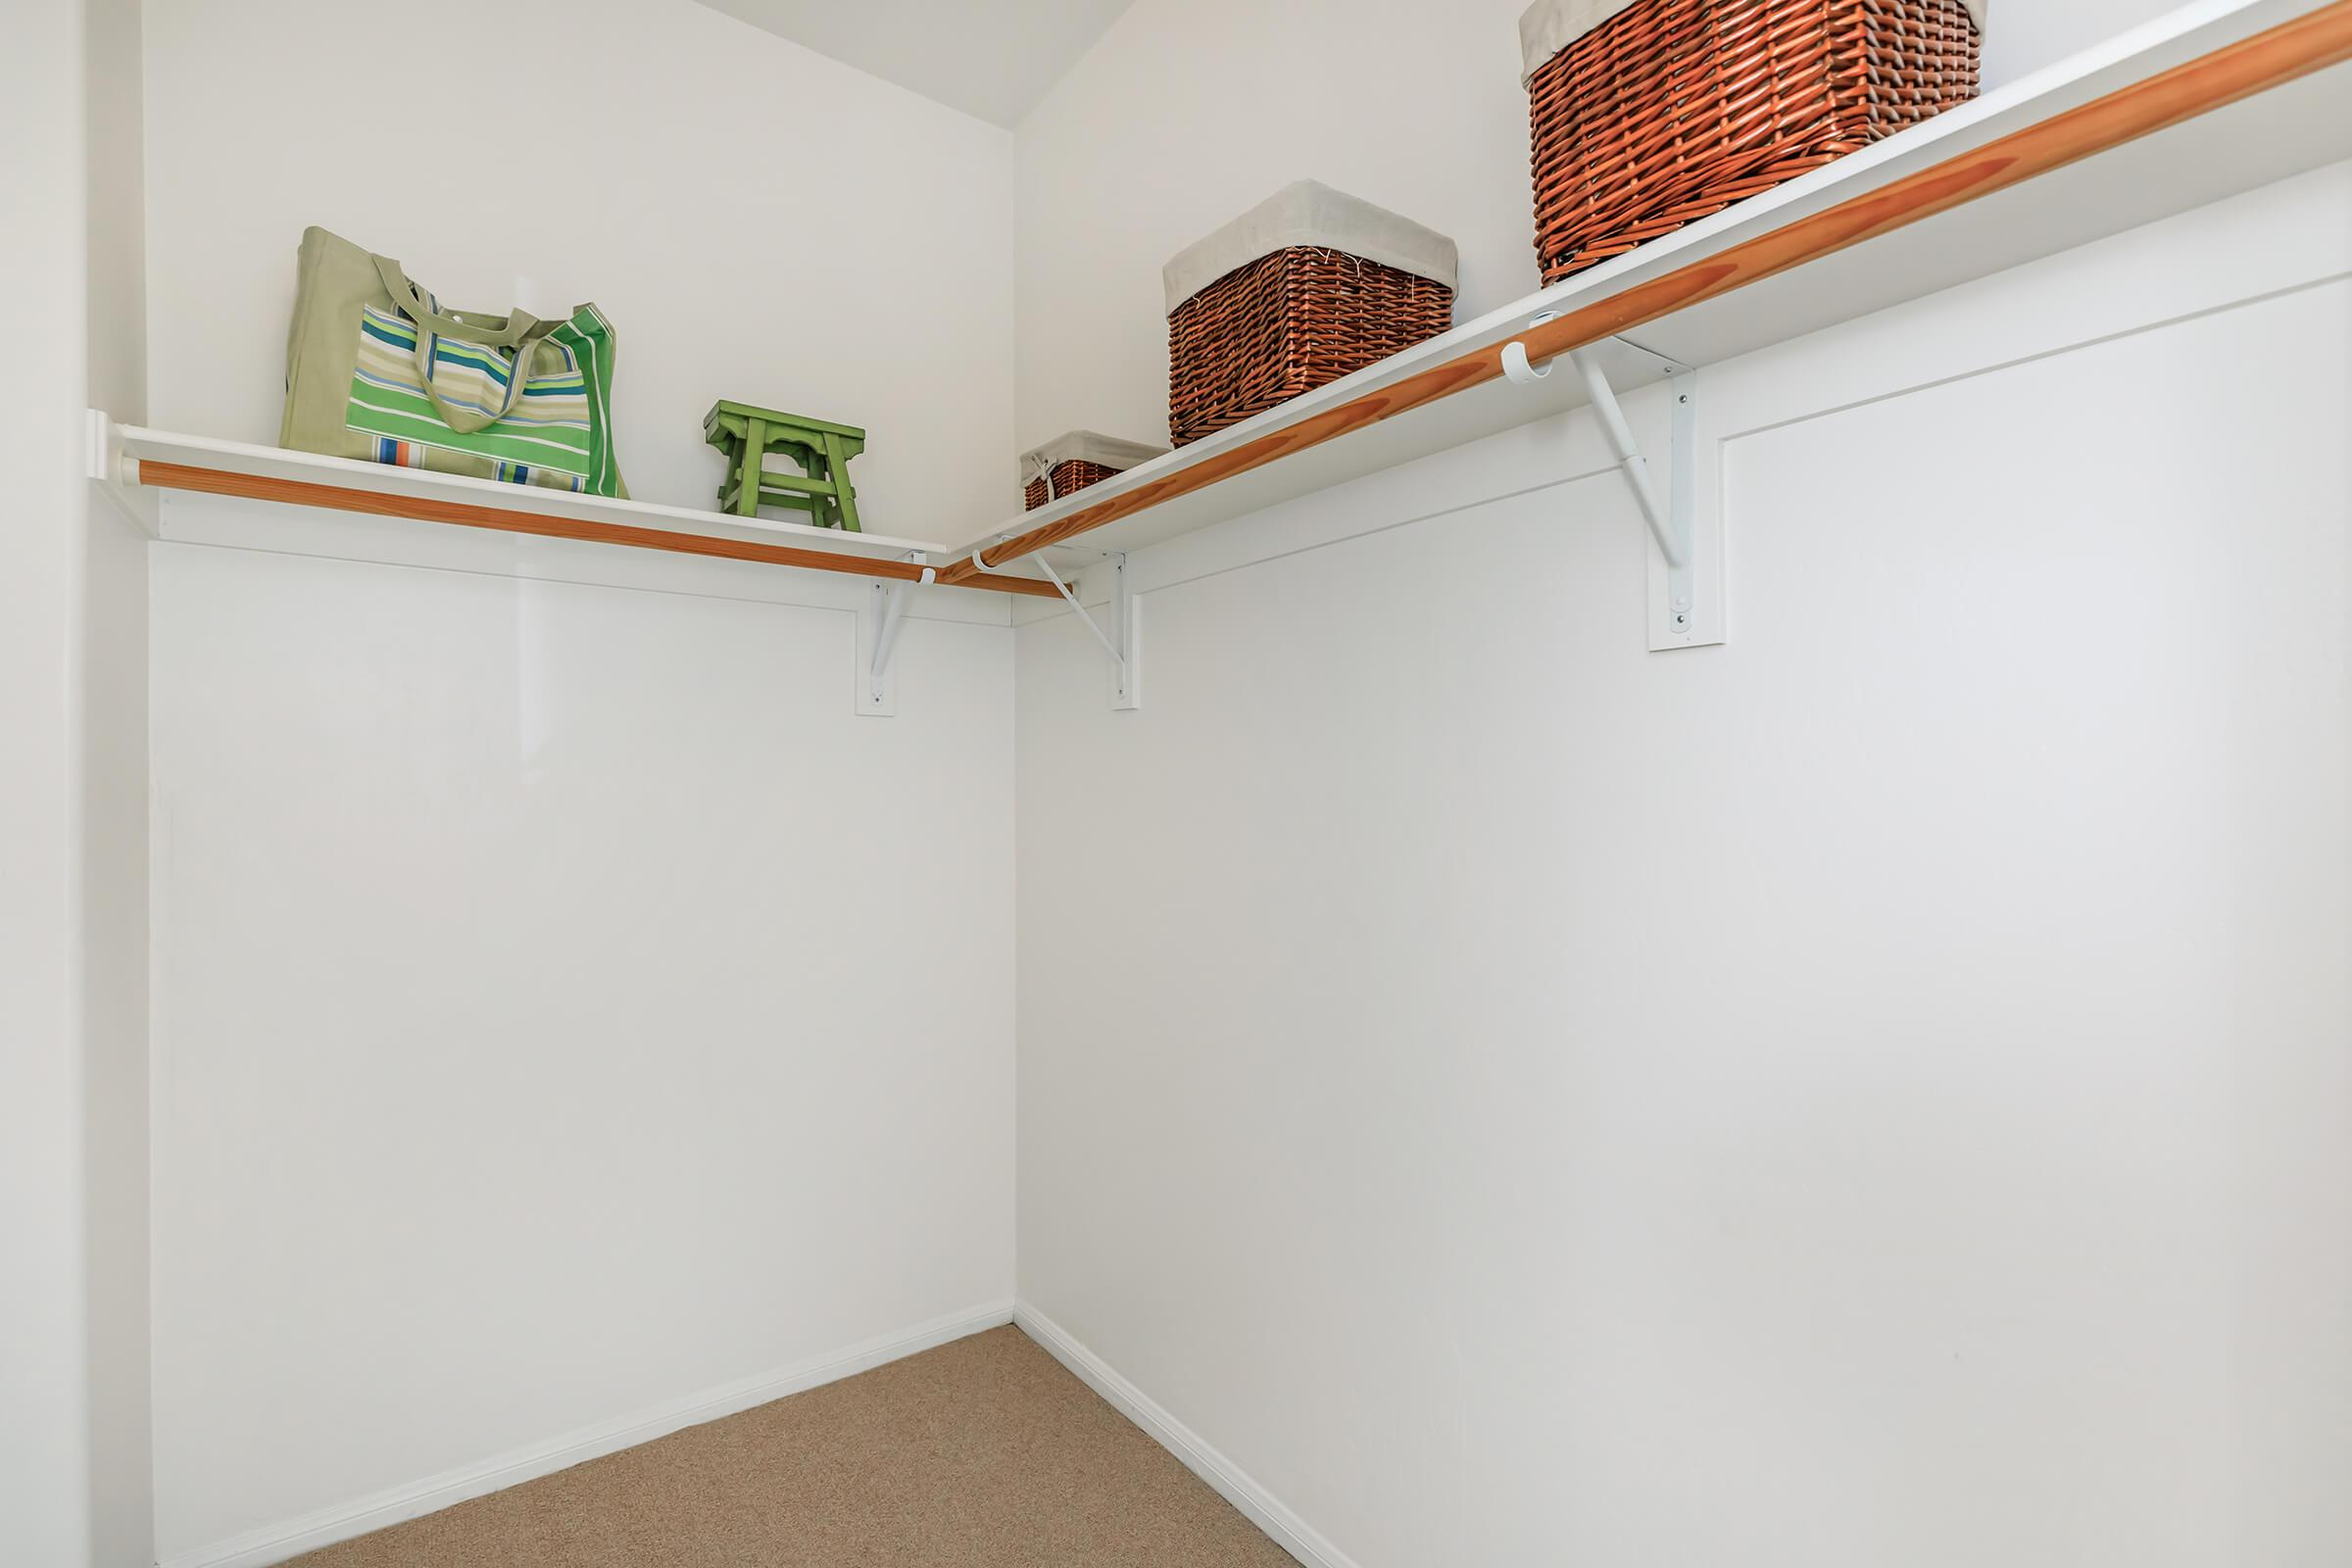 a refrigerator in a small room